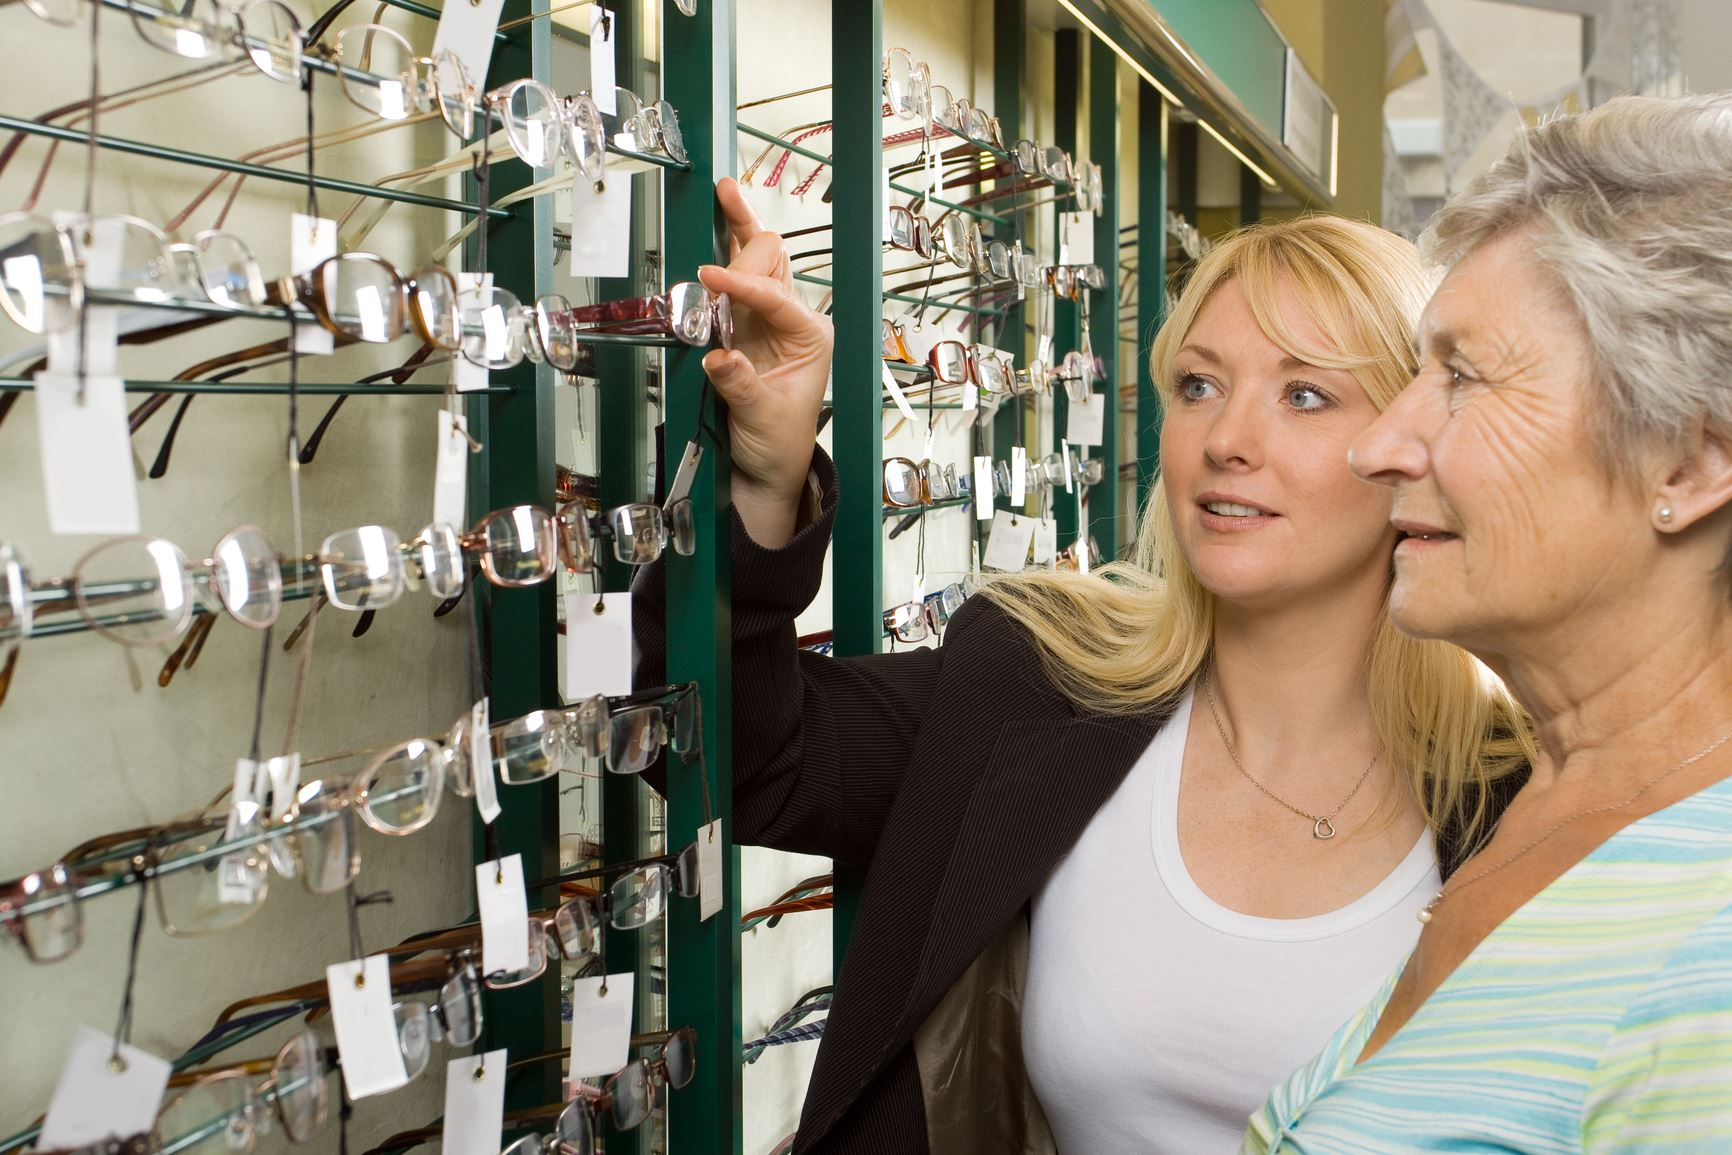 Professional Opticians Of Florida Licensed Opticians Your Vision